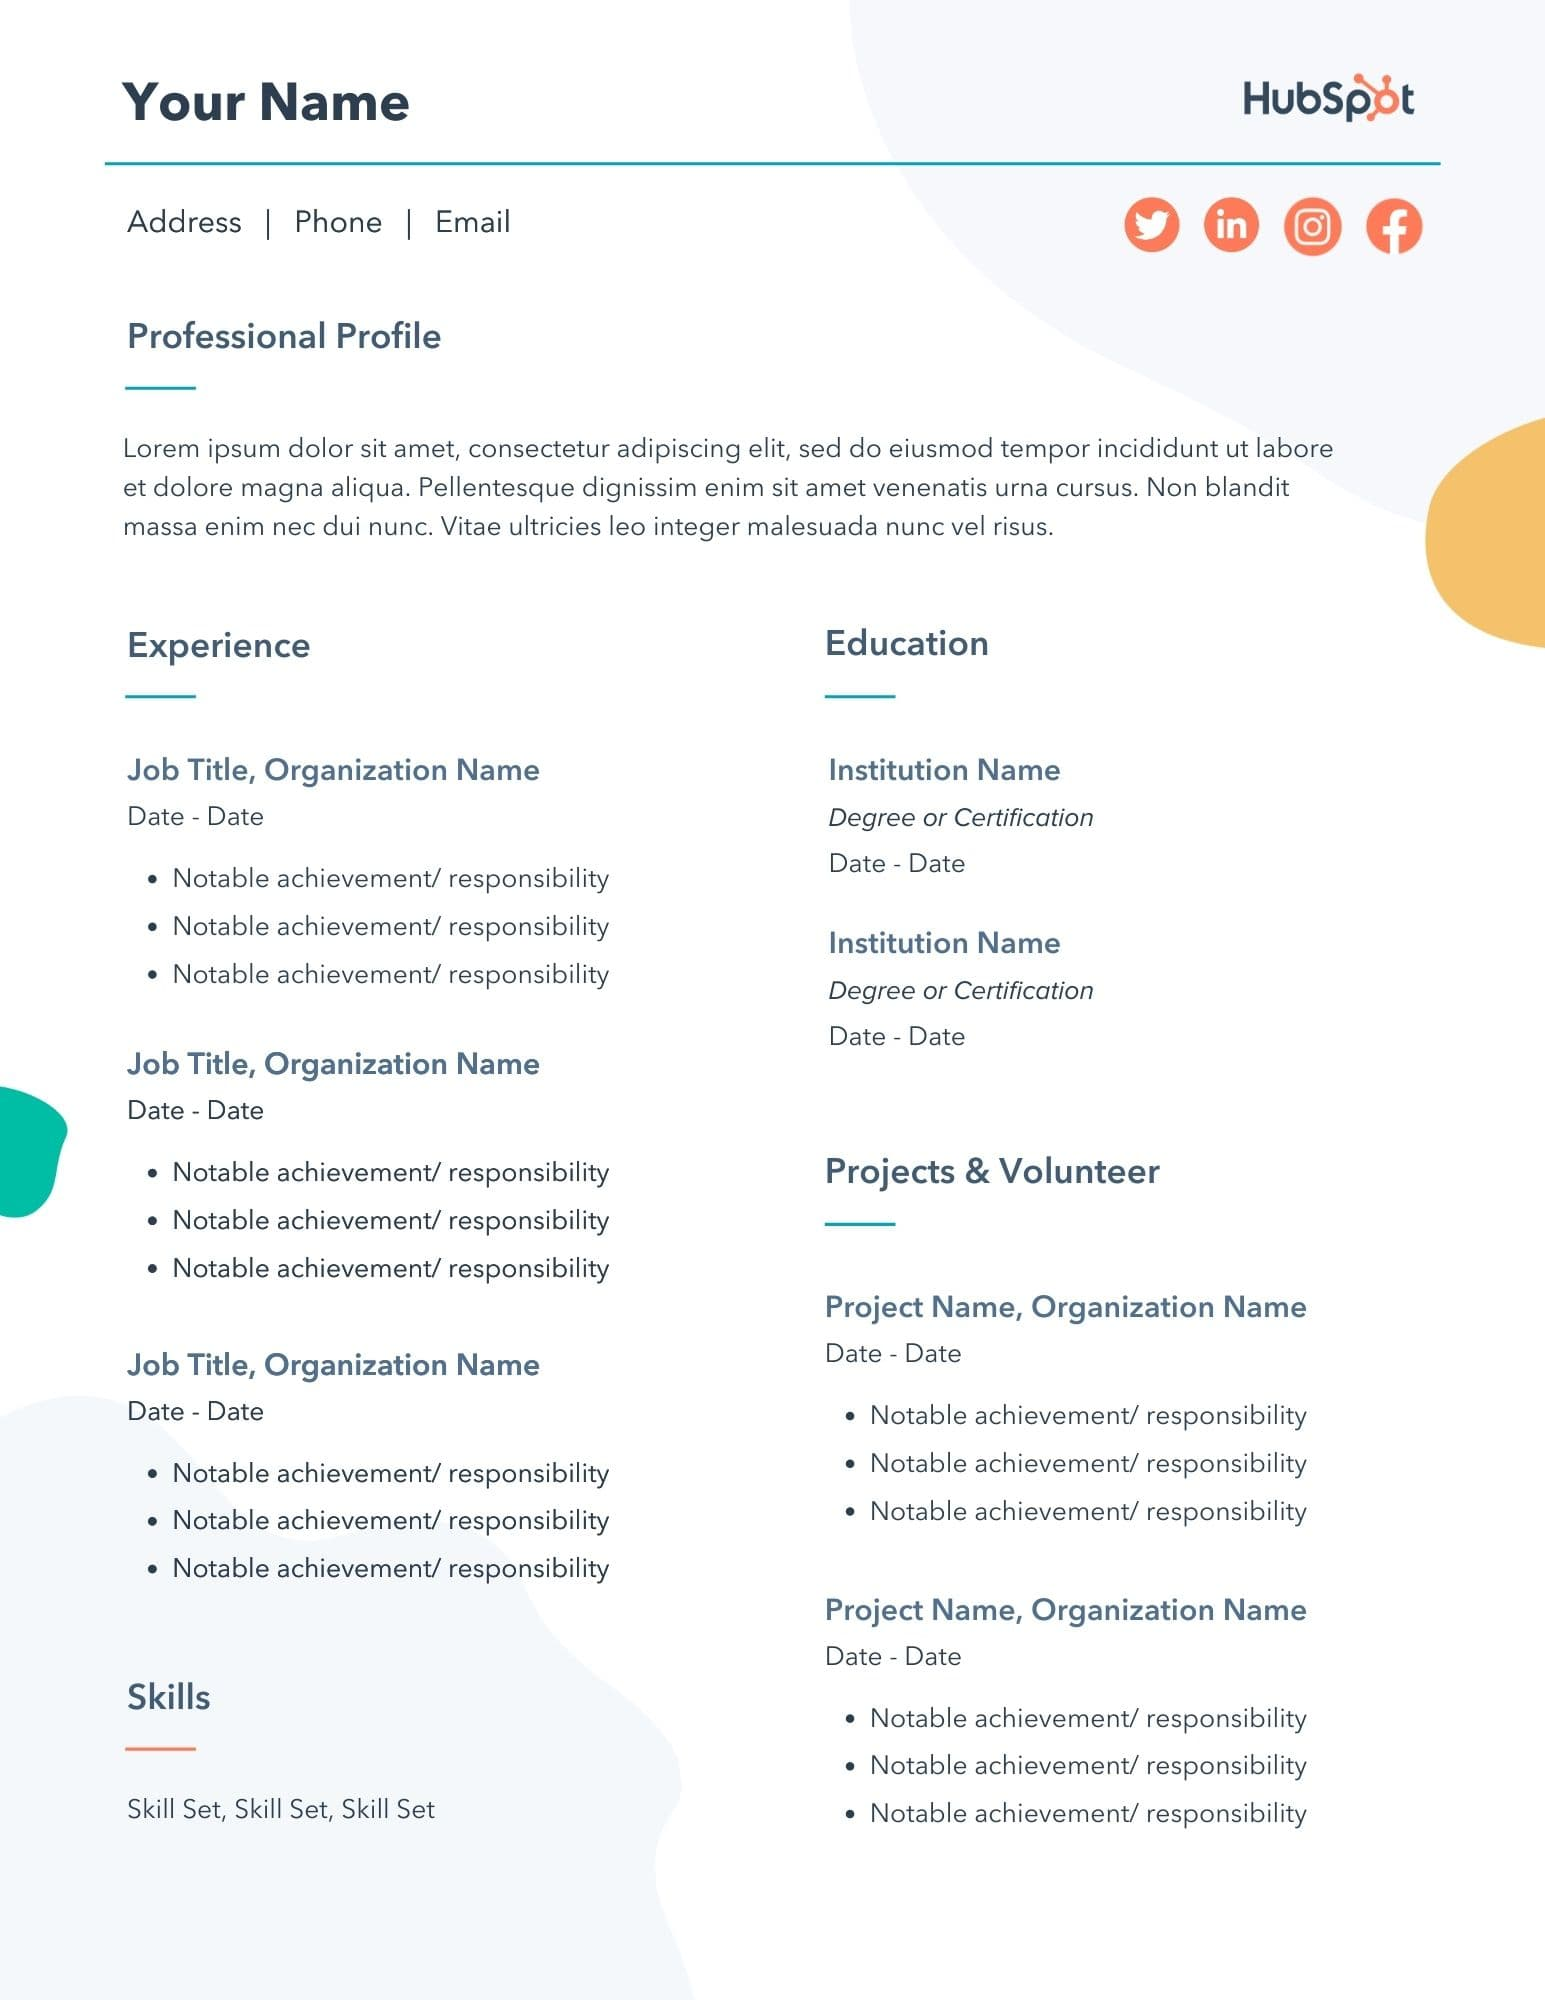 free resume templates for microsoft word to make your own experienced professionals Resume Resume For Experienced Professionals Templates